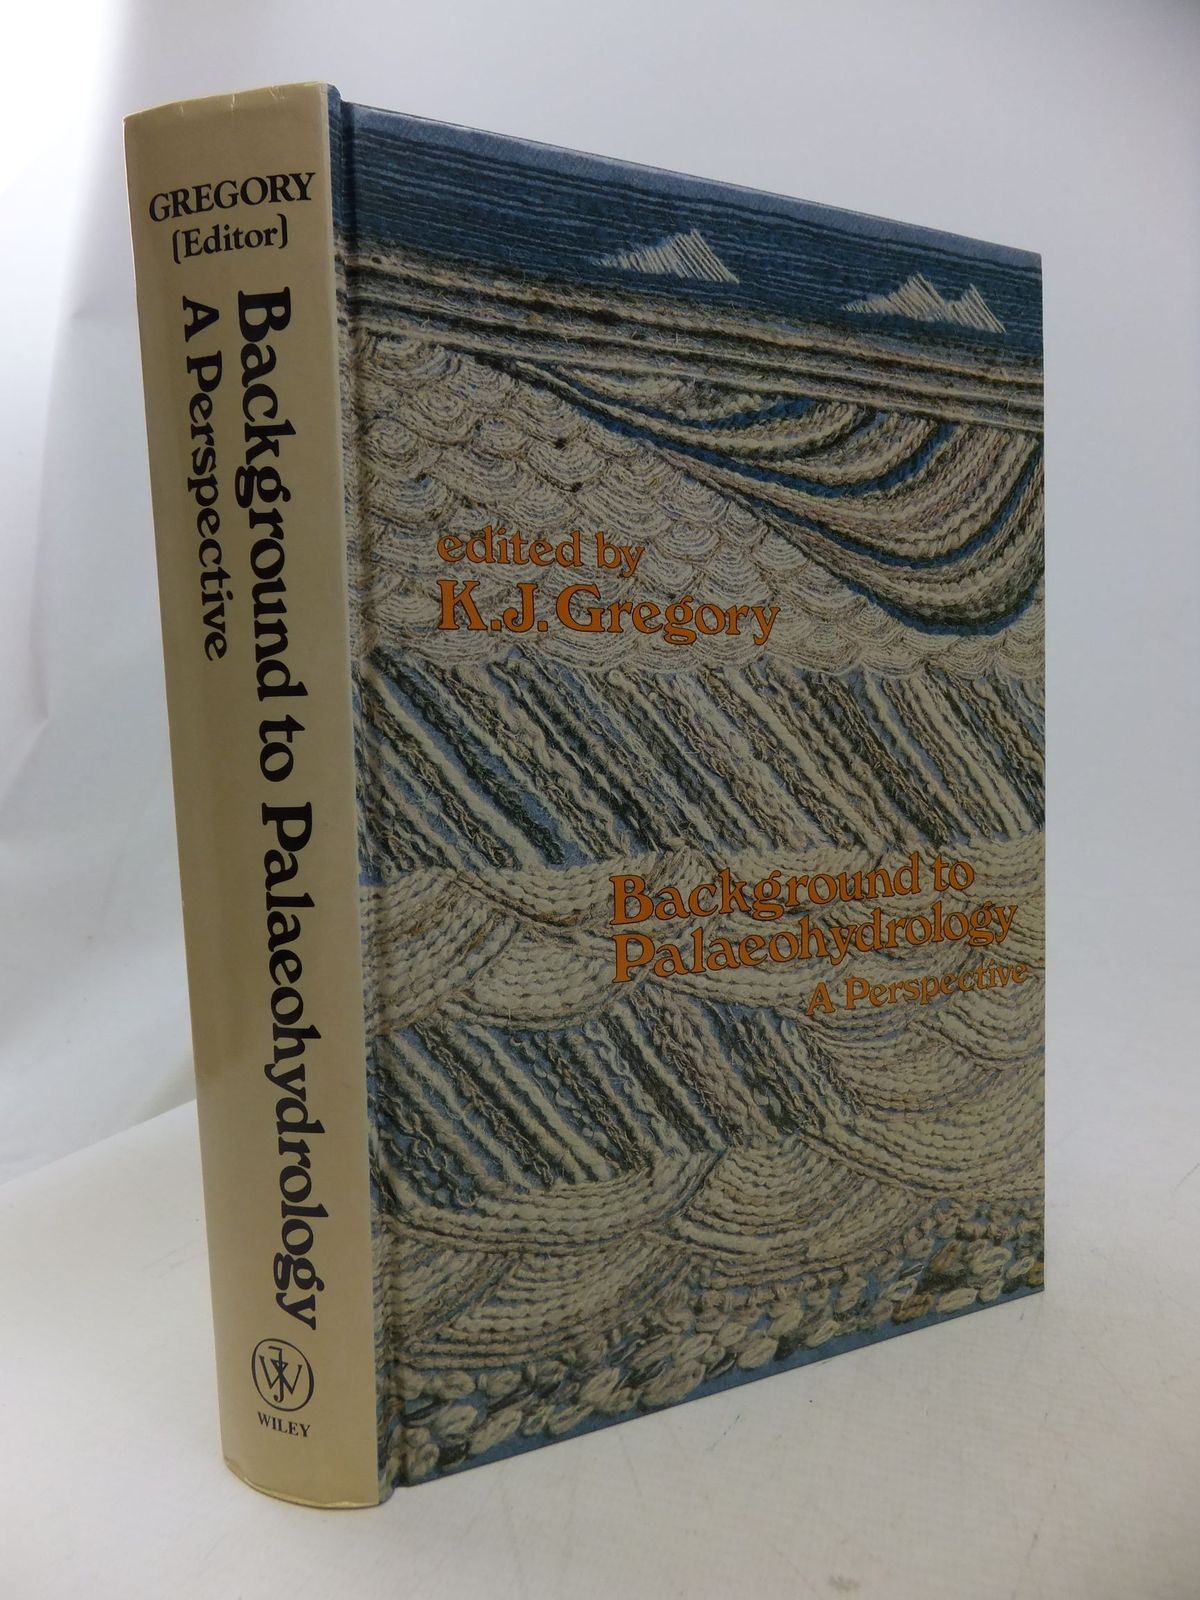 Photo of BACKGROUND TO PALAEOHYDROLOGY A PERSPECTIVE written by Gregory, K.J. published by John Wiley & Sons (STOCK CODE: 1710854)  for sale by Stella & Rose's Books